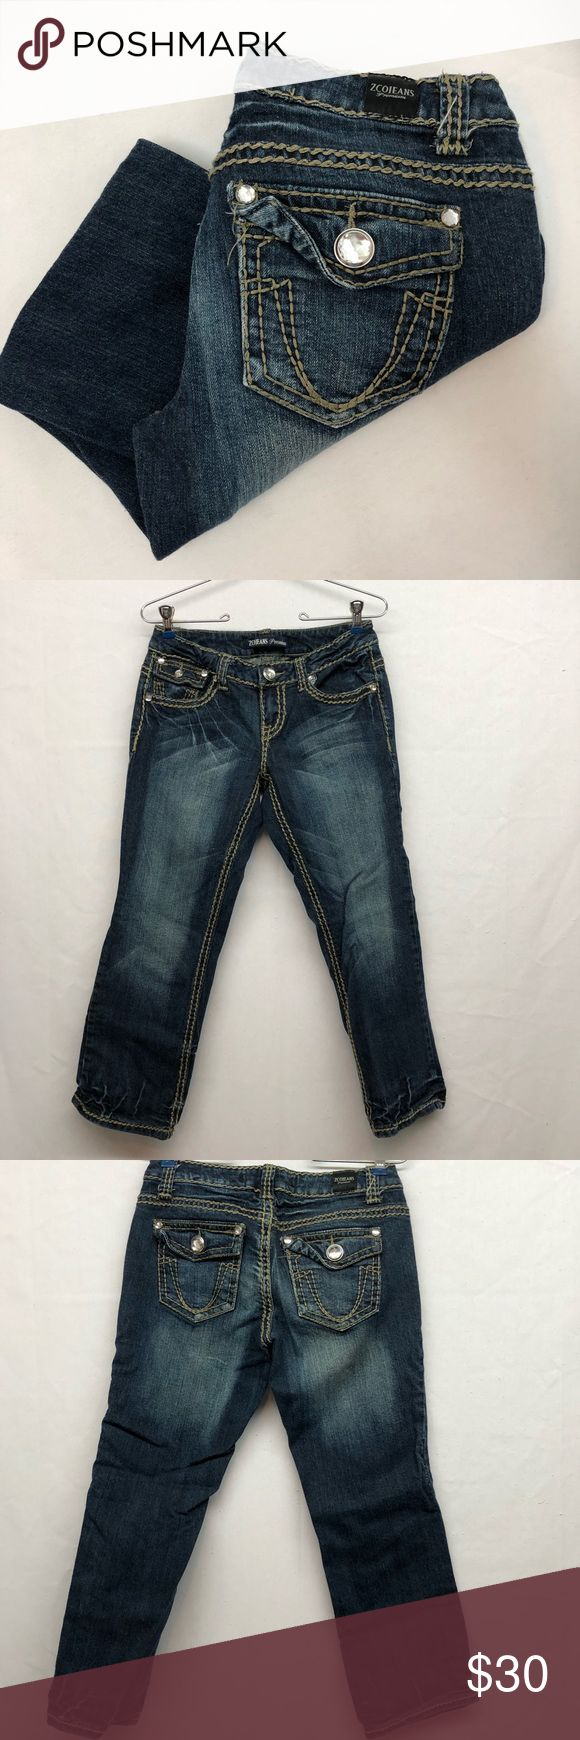 """Z Co Jeans Premium Crops Z Co Premium Jeans Crop. Excellent condition with no flaws. Size 7. Waist laying flat 14 1/2"""". Rise 7 1/2"""". Inseam 25"""". Bottom leg opening 7 1/2"""". ZCO Jeans Ankle & Cropped"""